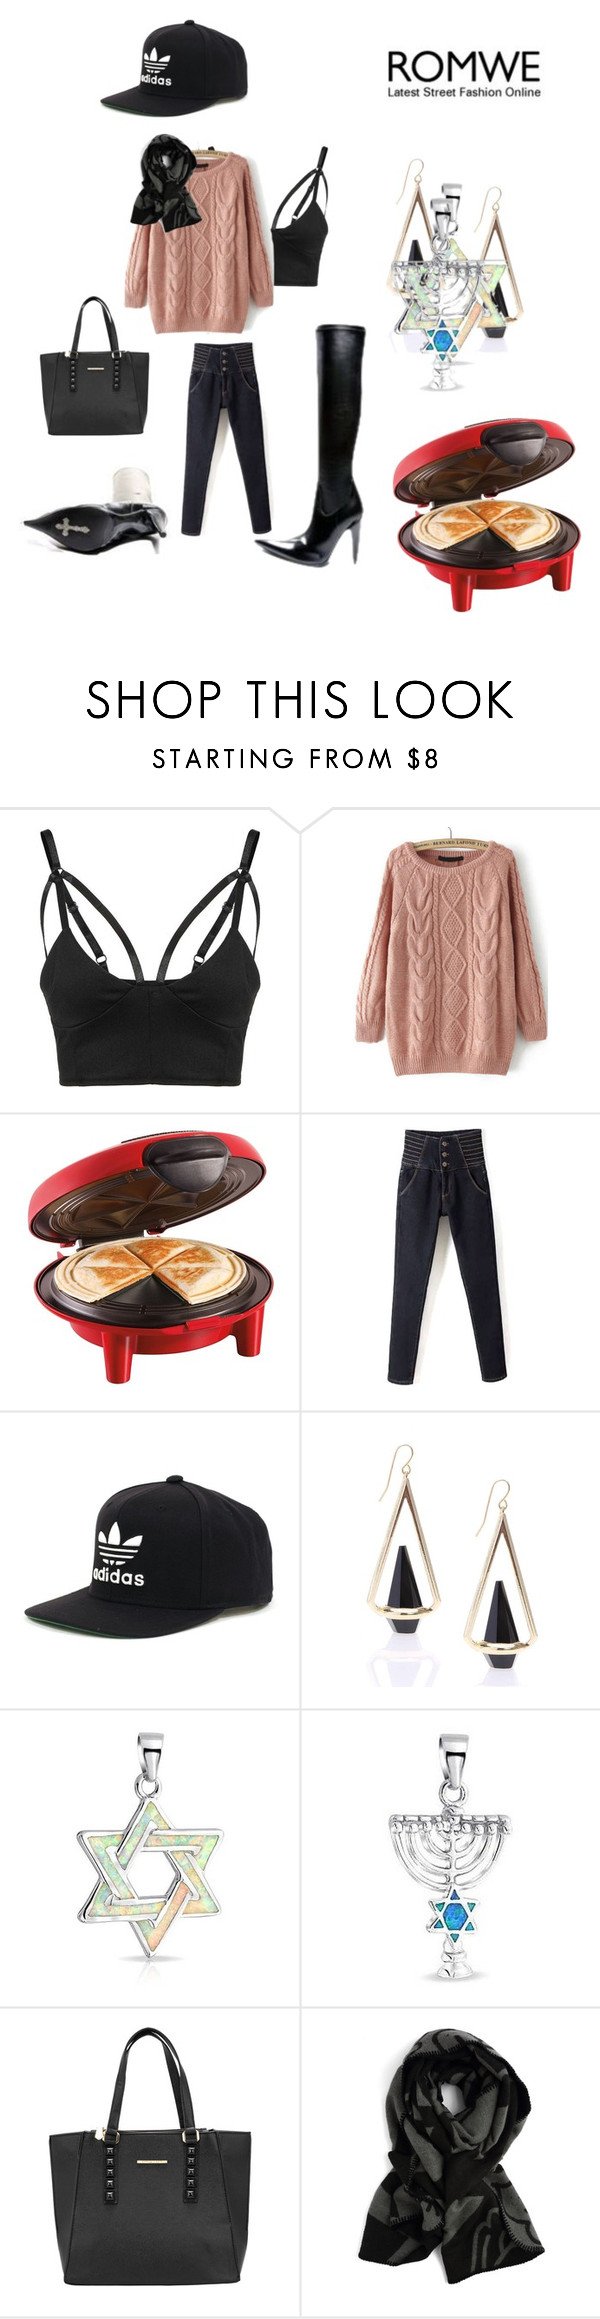 """Romwe sweater contest VII"" by naomig-dix ❤ liked on Polyvore featuring Hamilton Beach, adidas, Bling Jewelry, women's clothing, women, female, woman, misses and juniors"